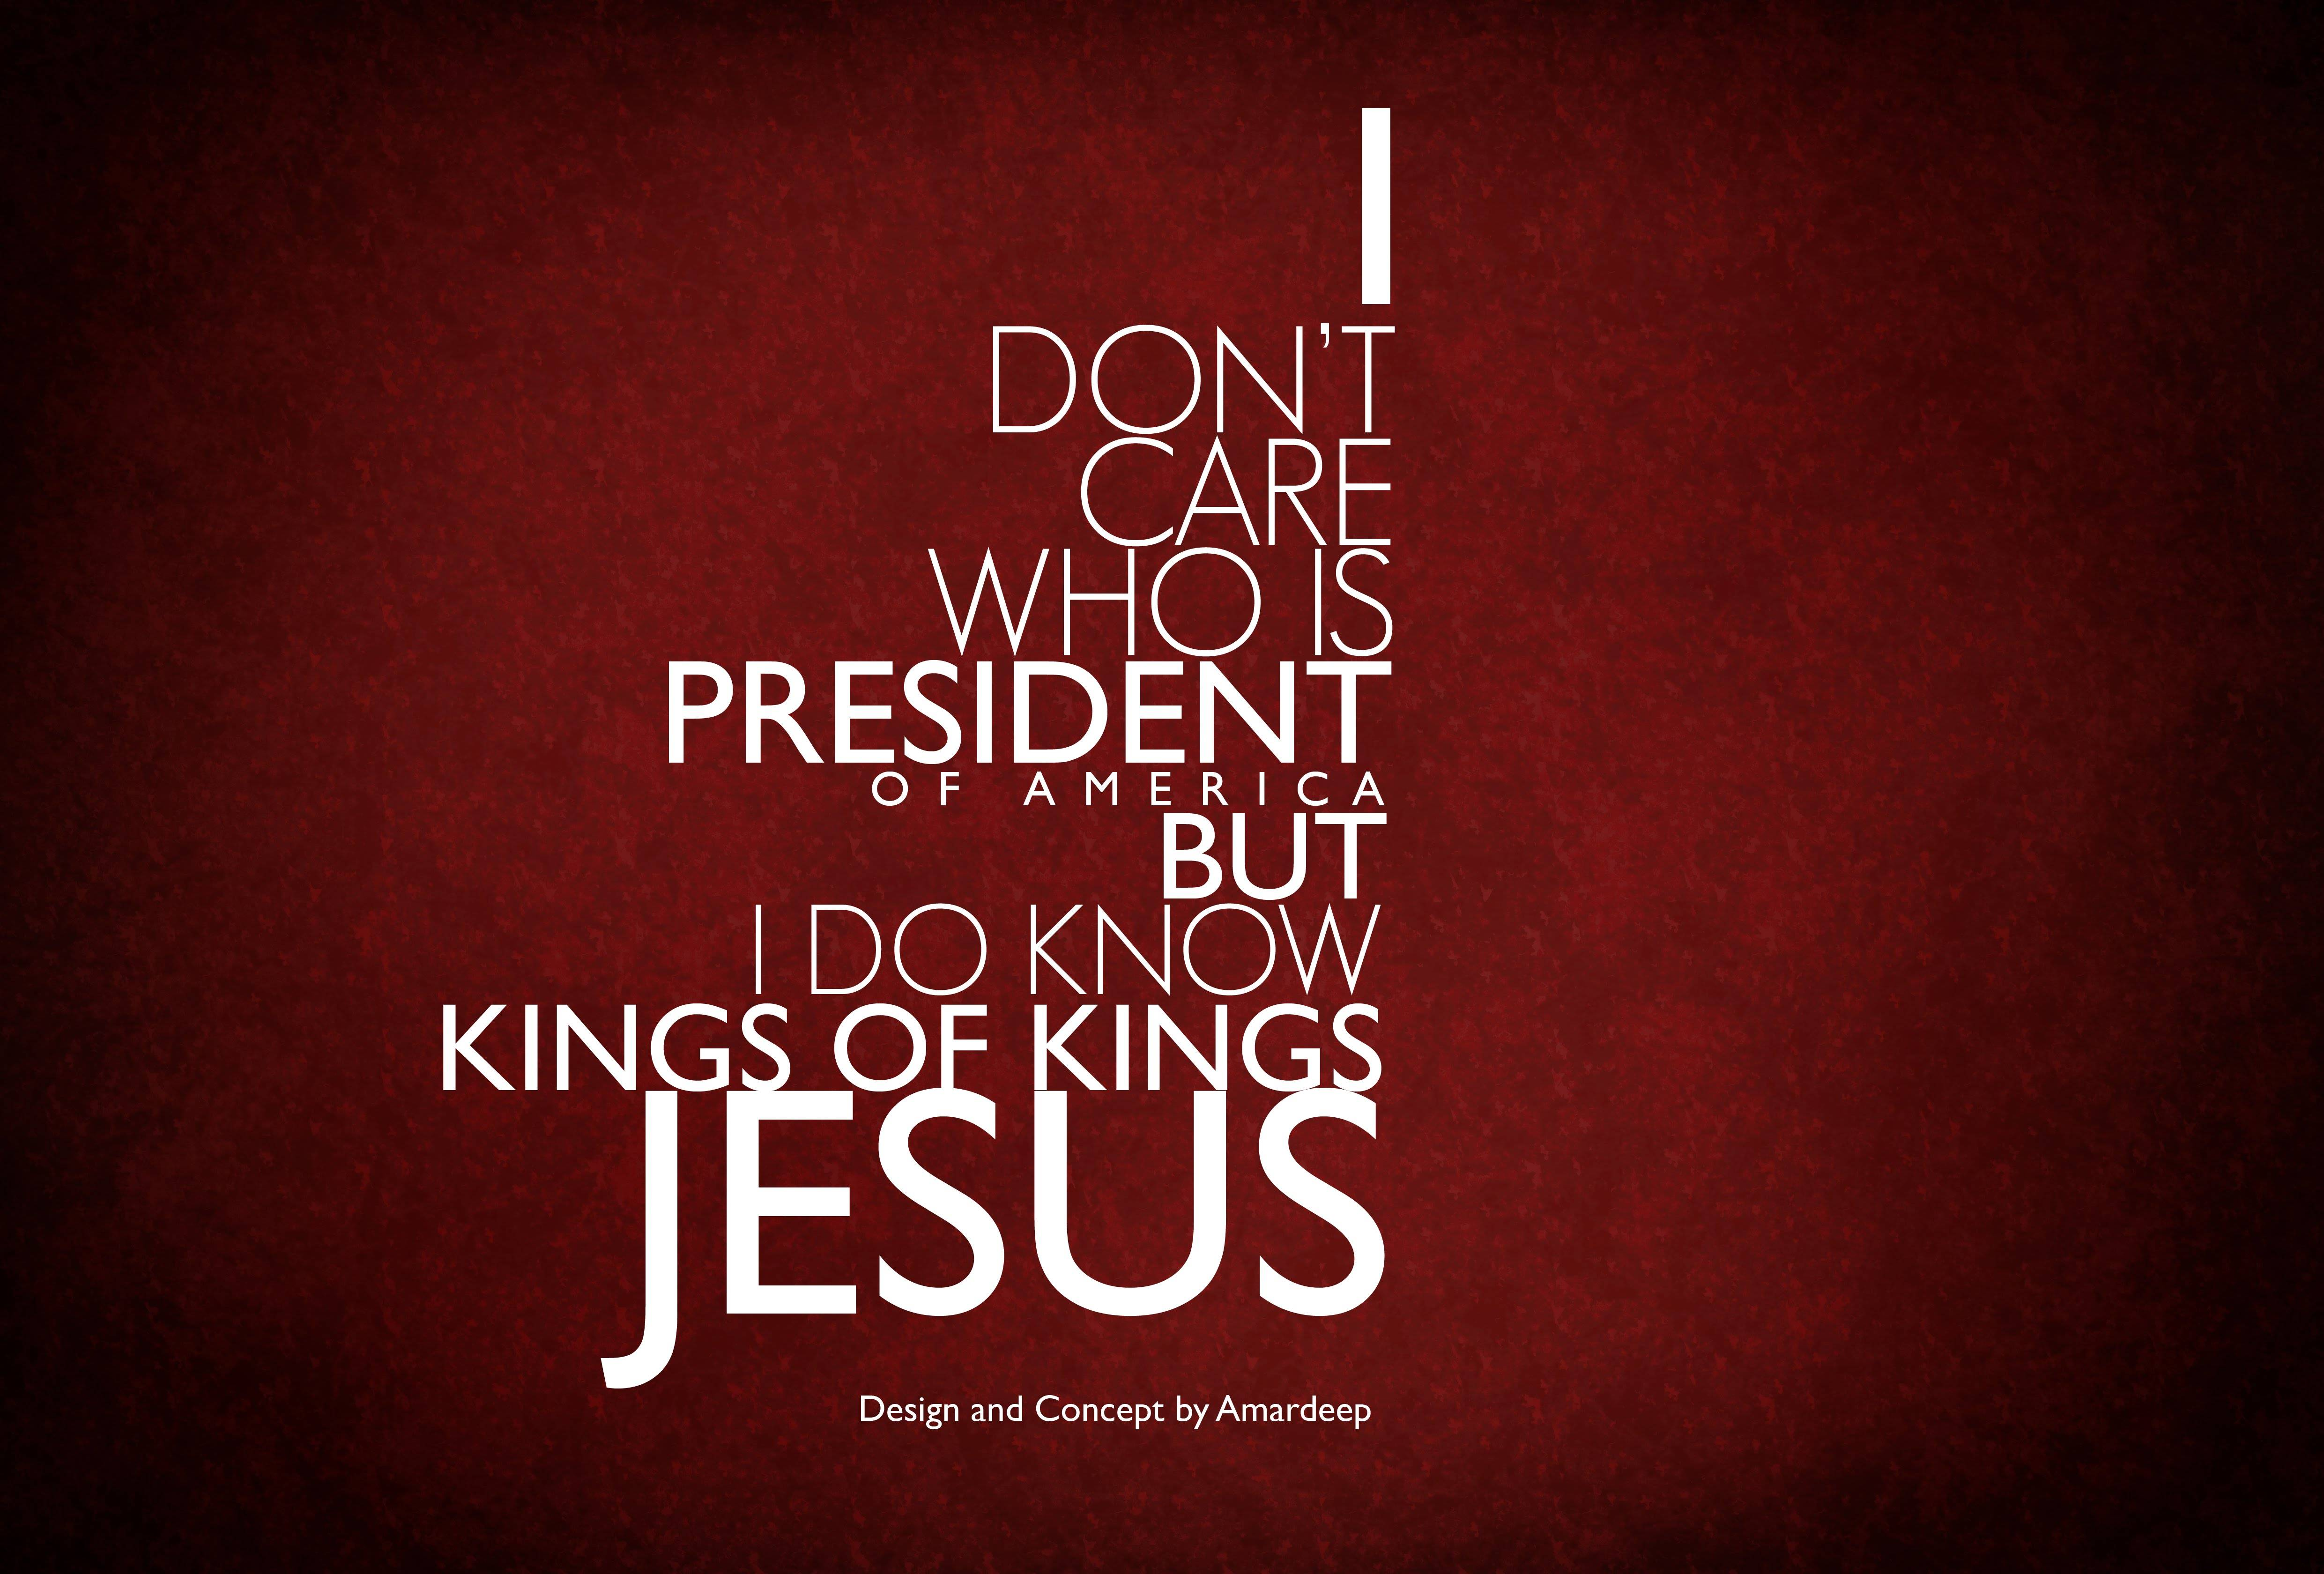 Godly Wallpaper Quotes Wallpapers For Christ Wallpaper Cave